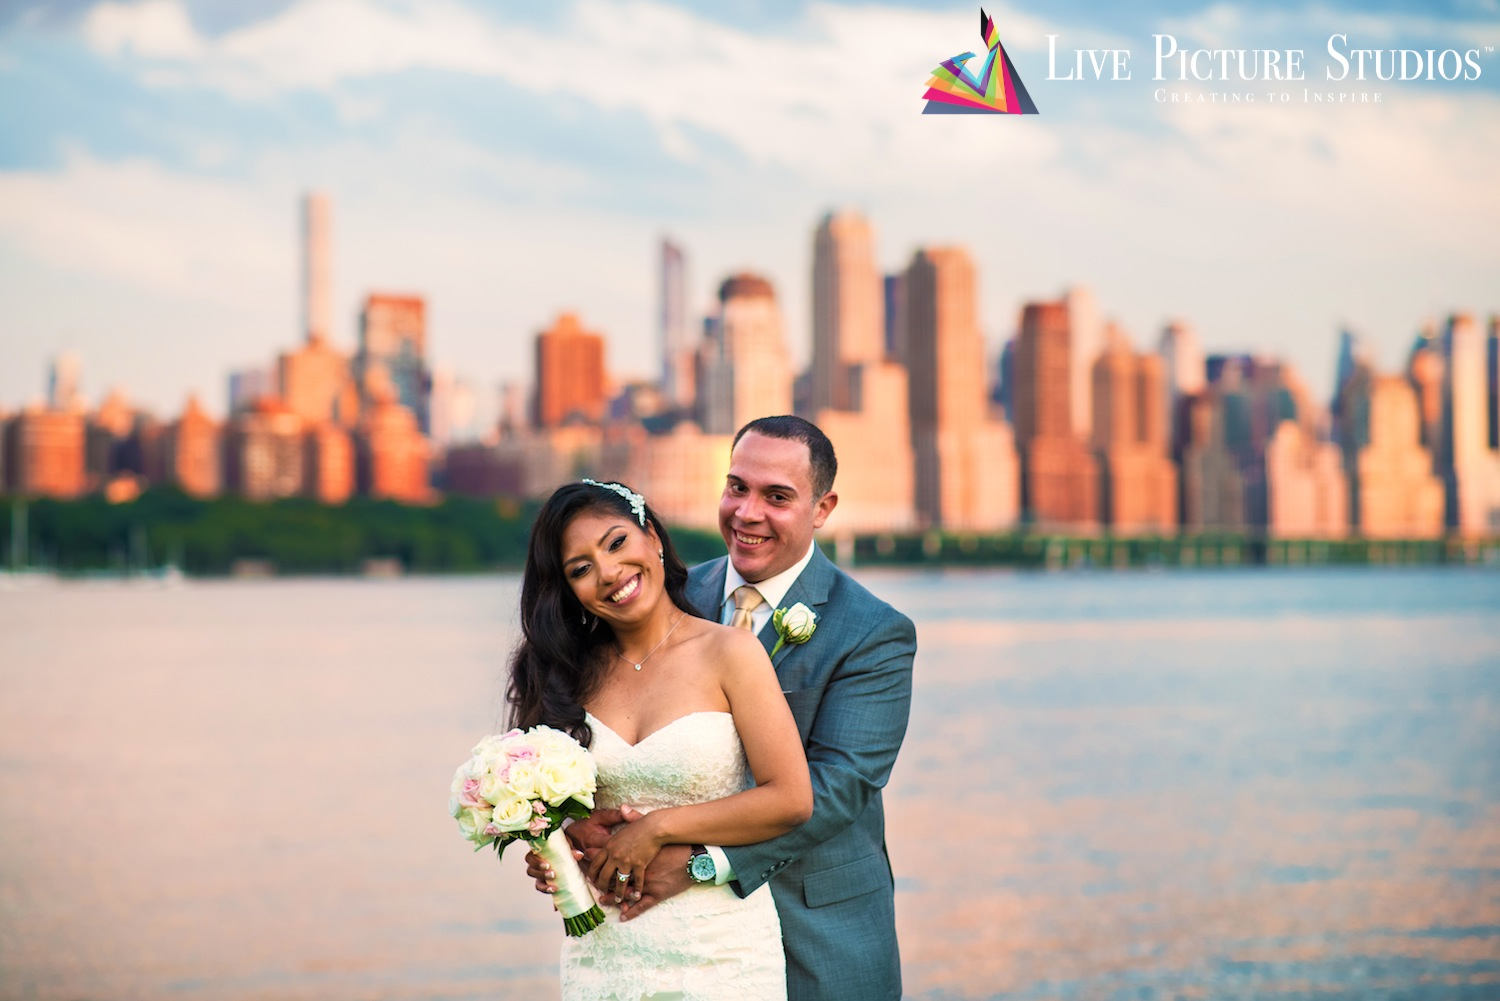 Waterfront Venues That'll Bring the Wow to Your Northern NJ Wedding Photography